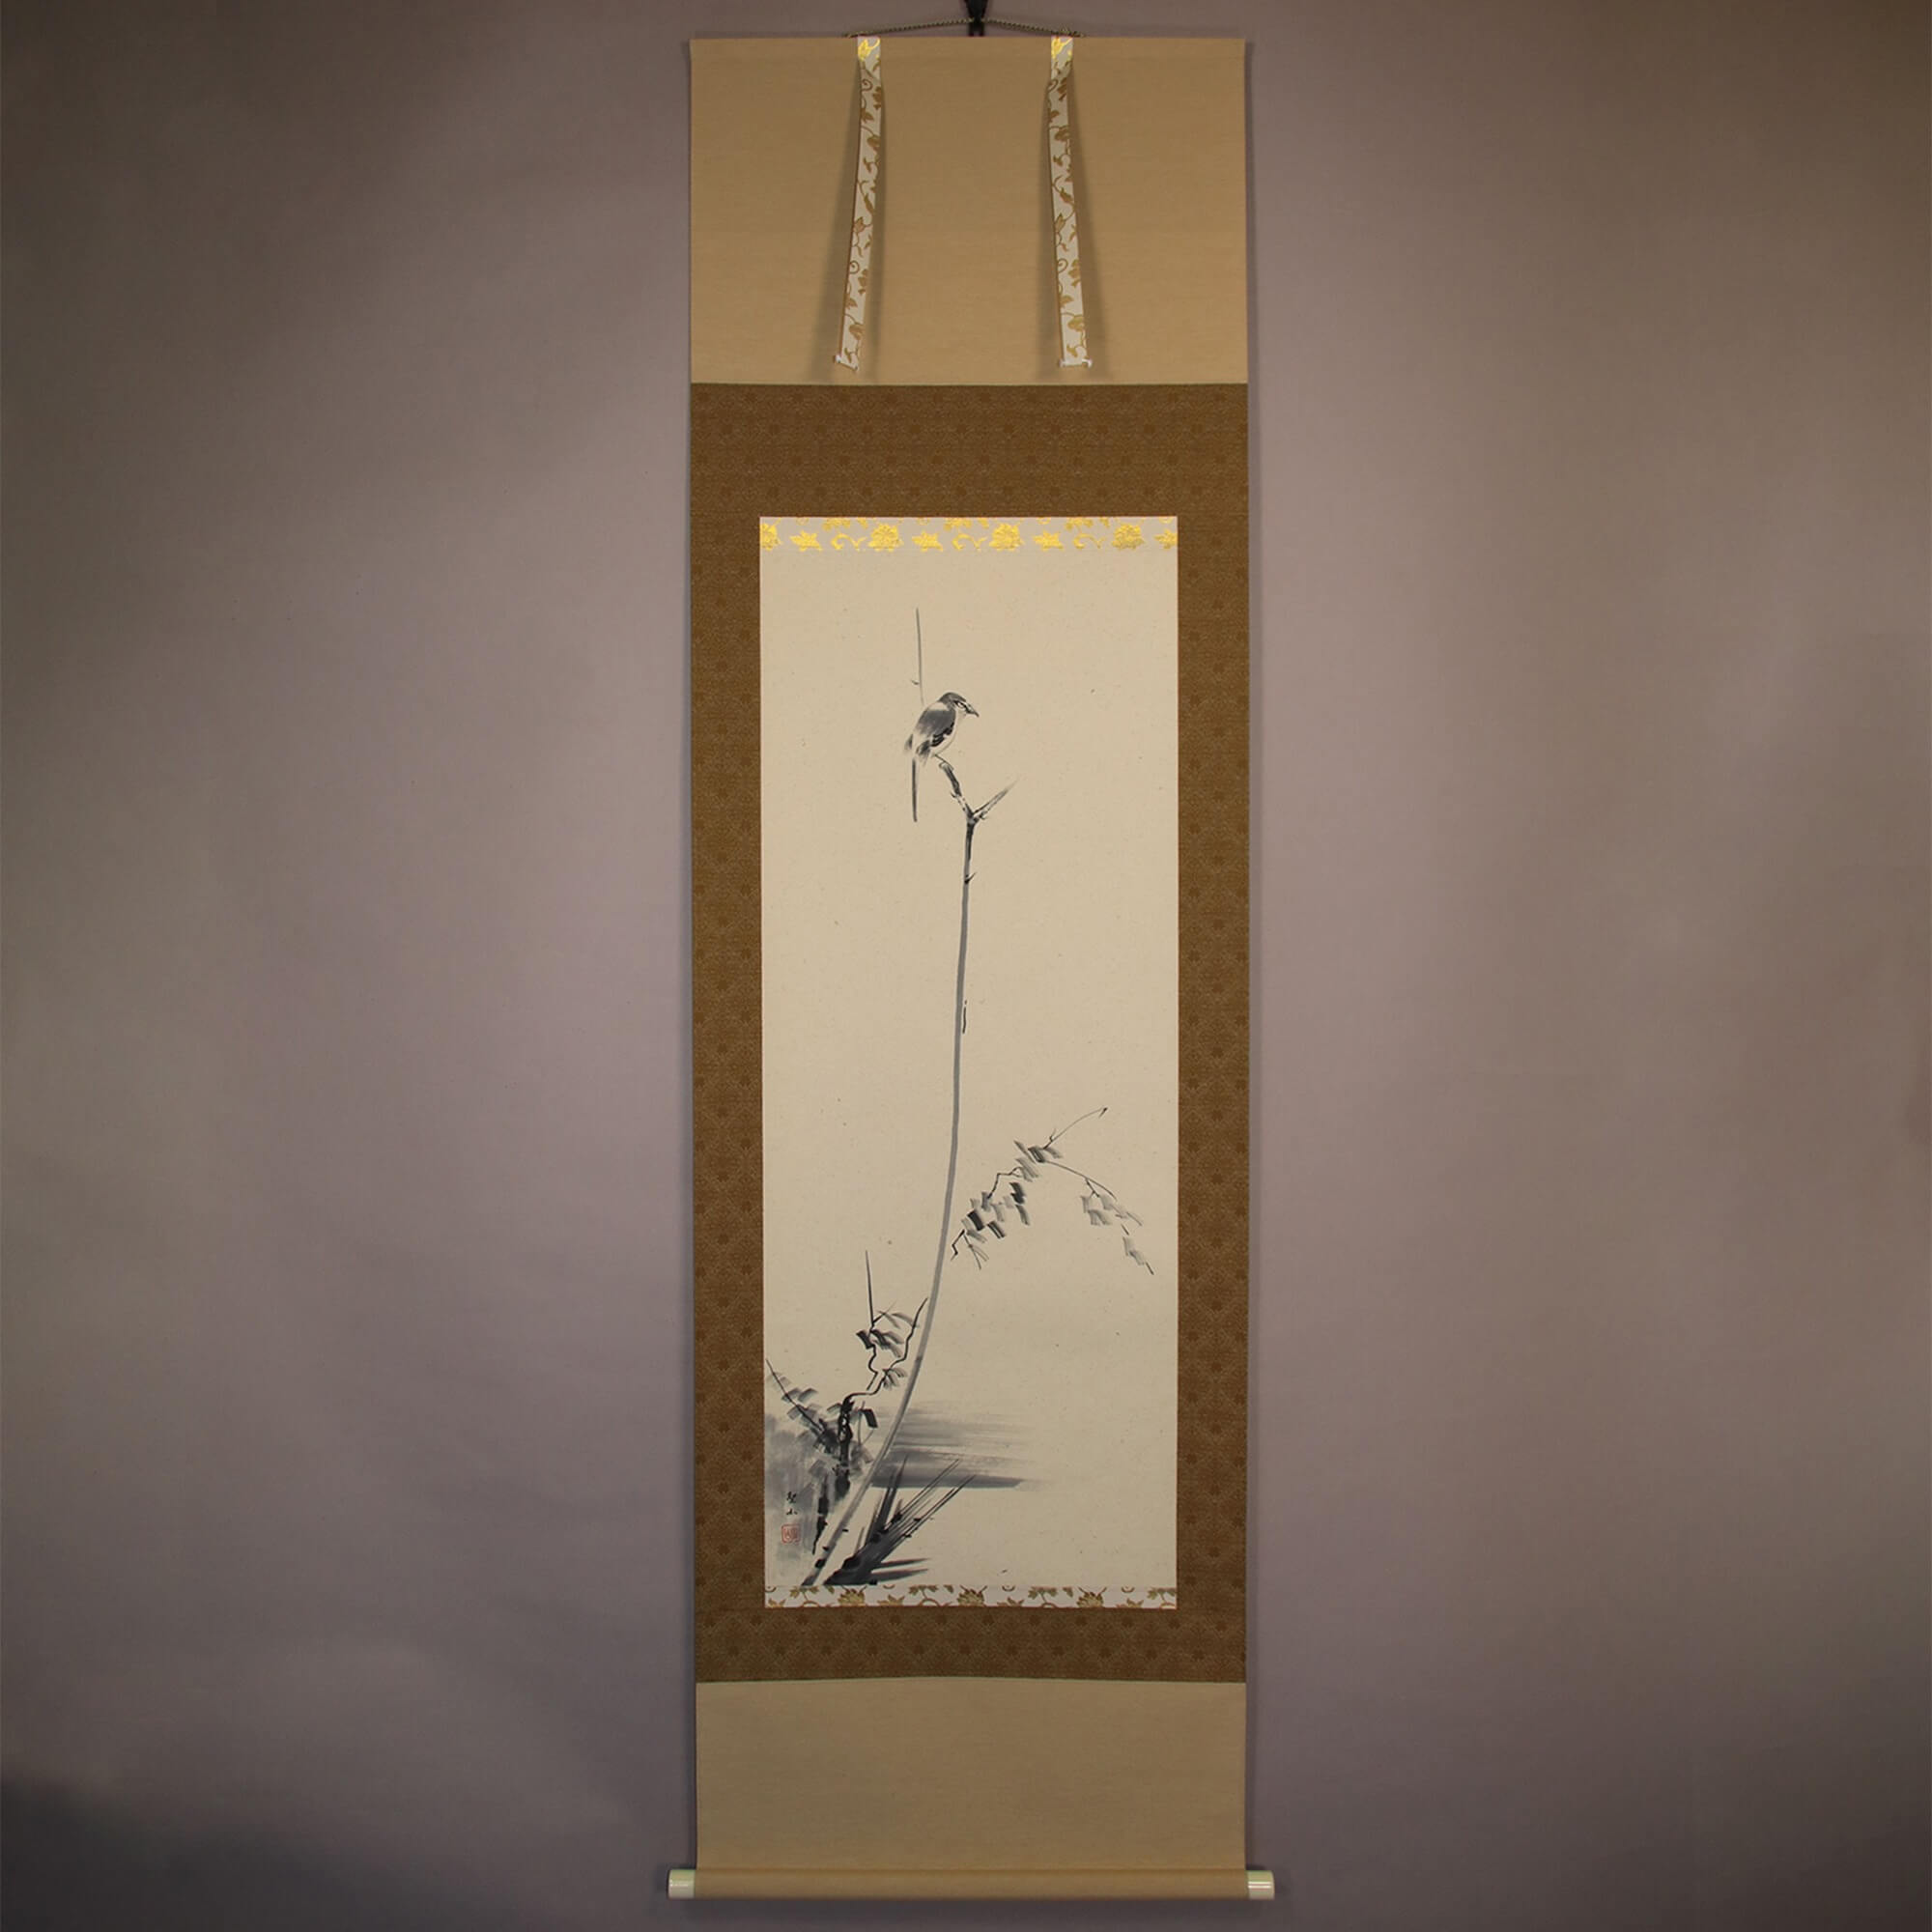 A Shrike Perching on a Withered Shrub / Kuzuya Seizan